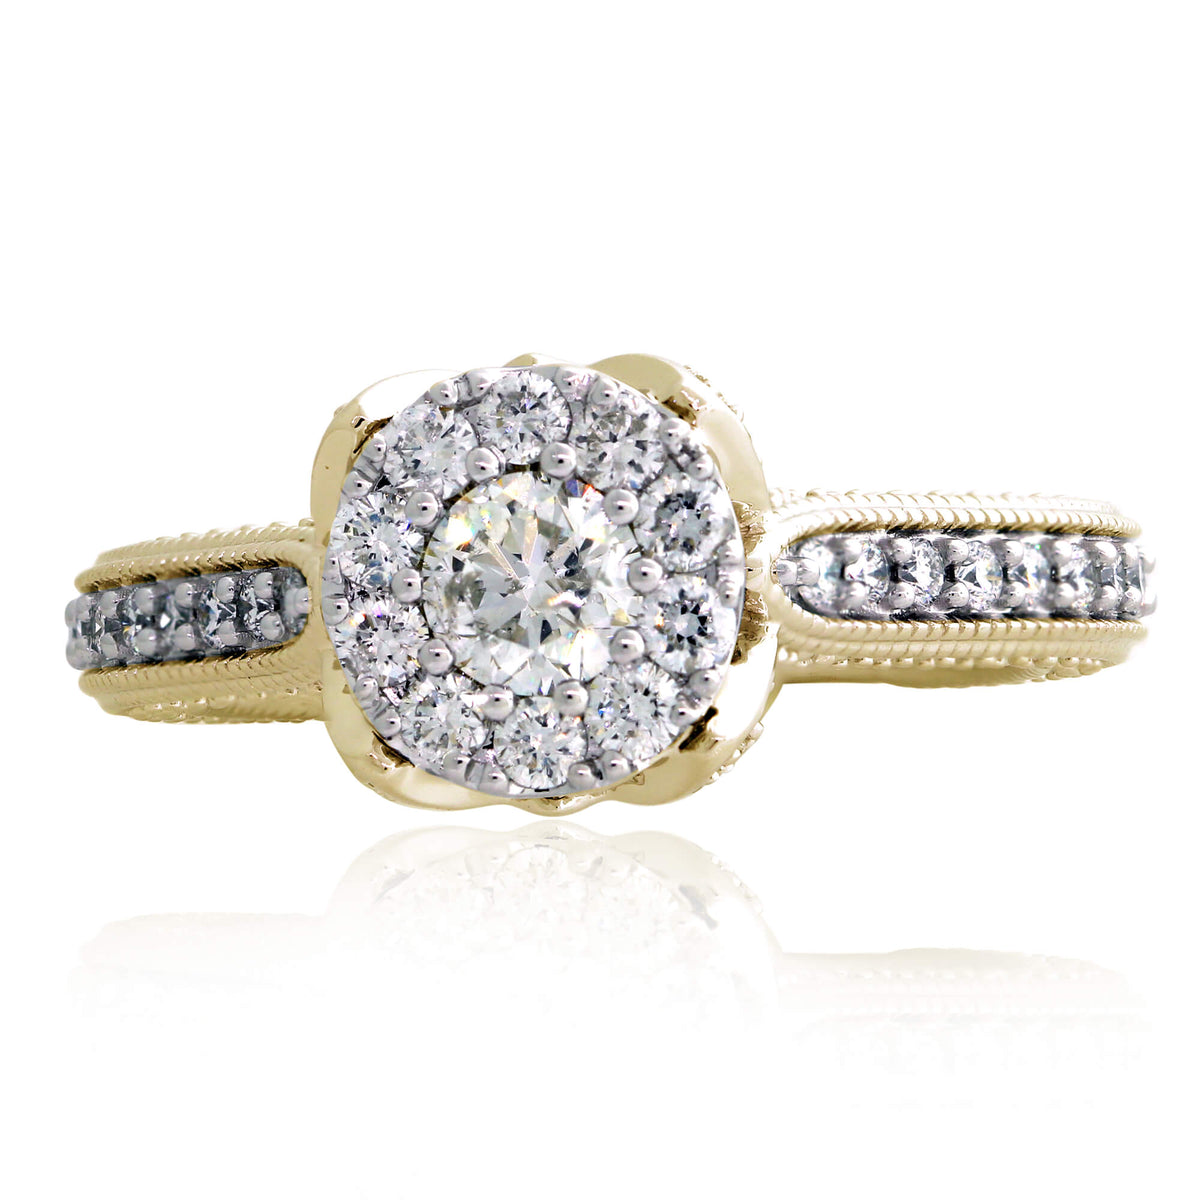 Miché Collection 1.39 Ct Diamond Halo Engagement Set in 14k Gold